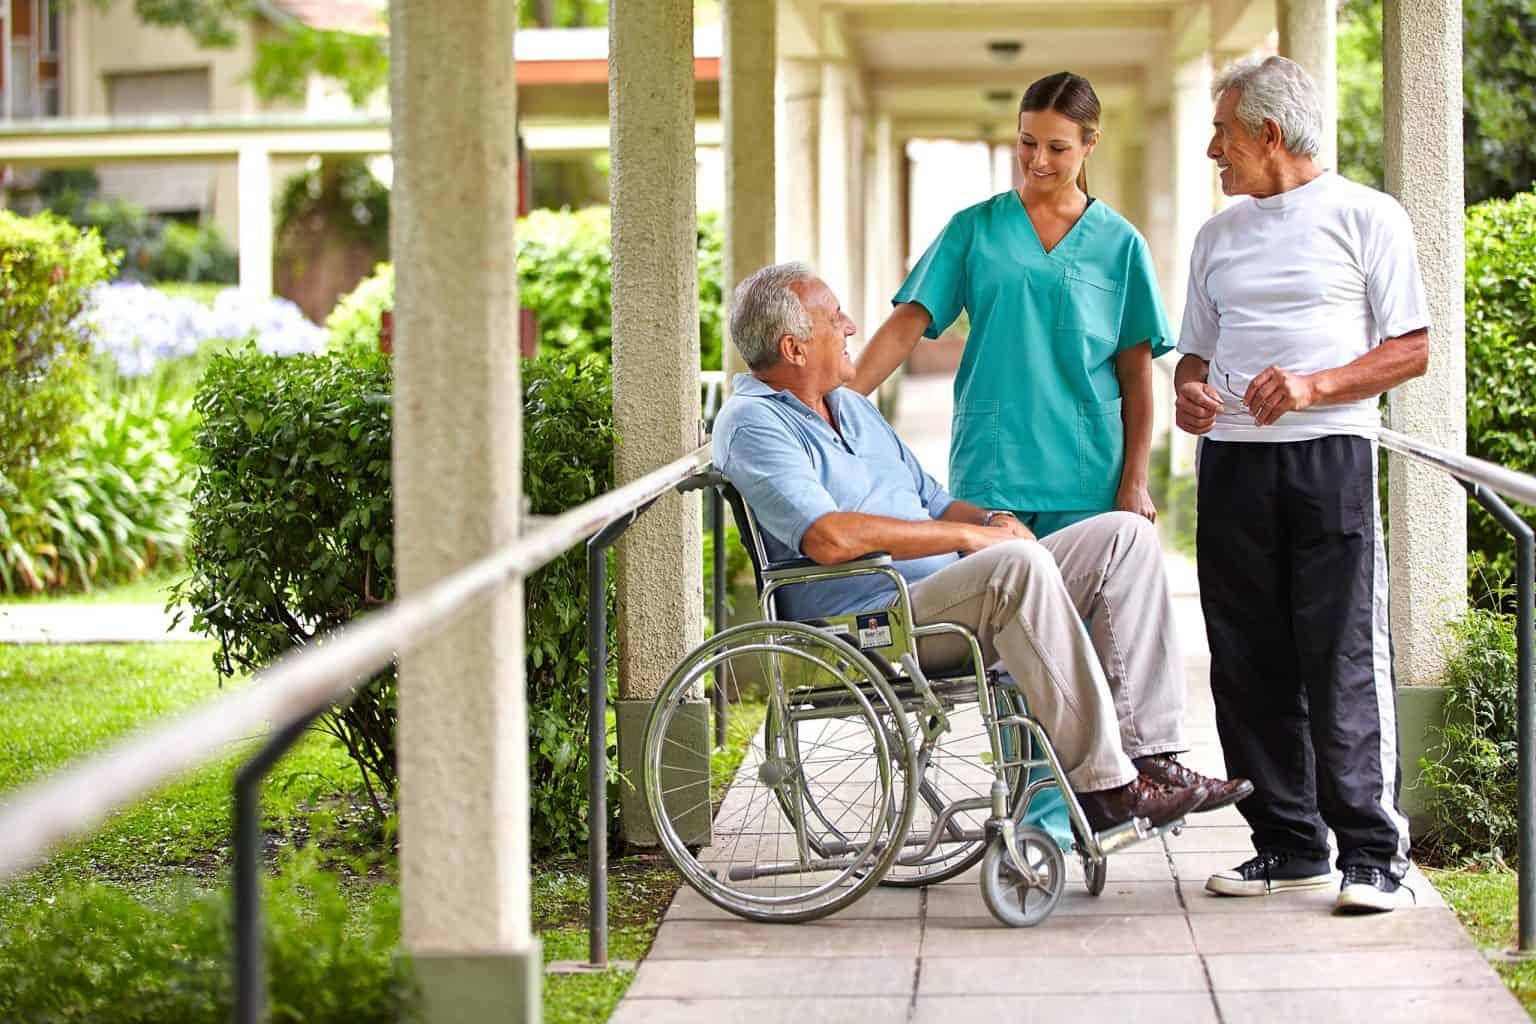 residents at residential aged care facility